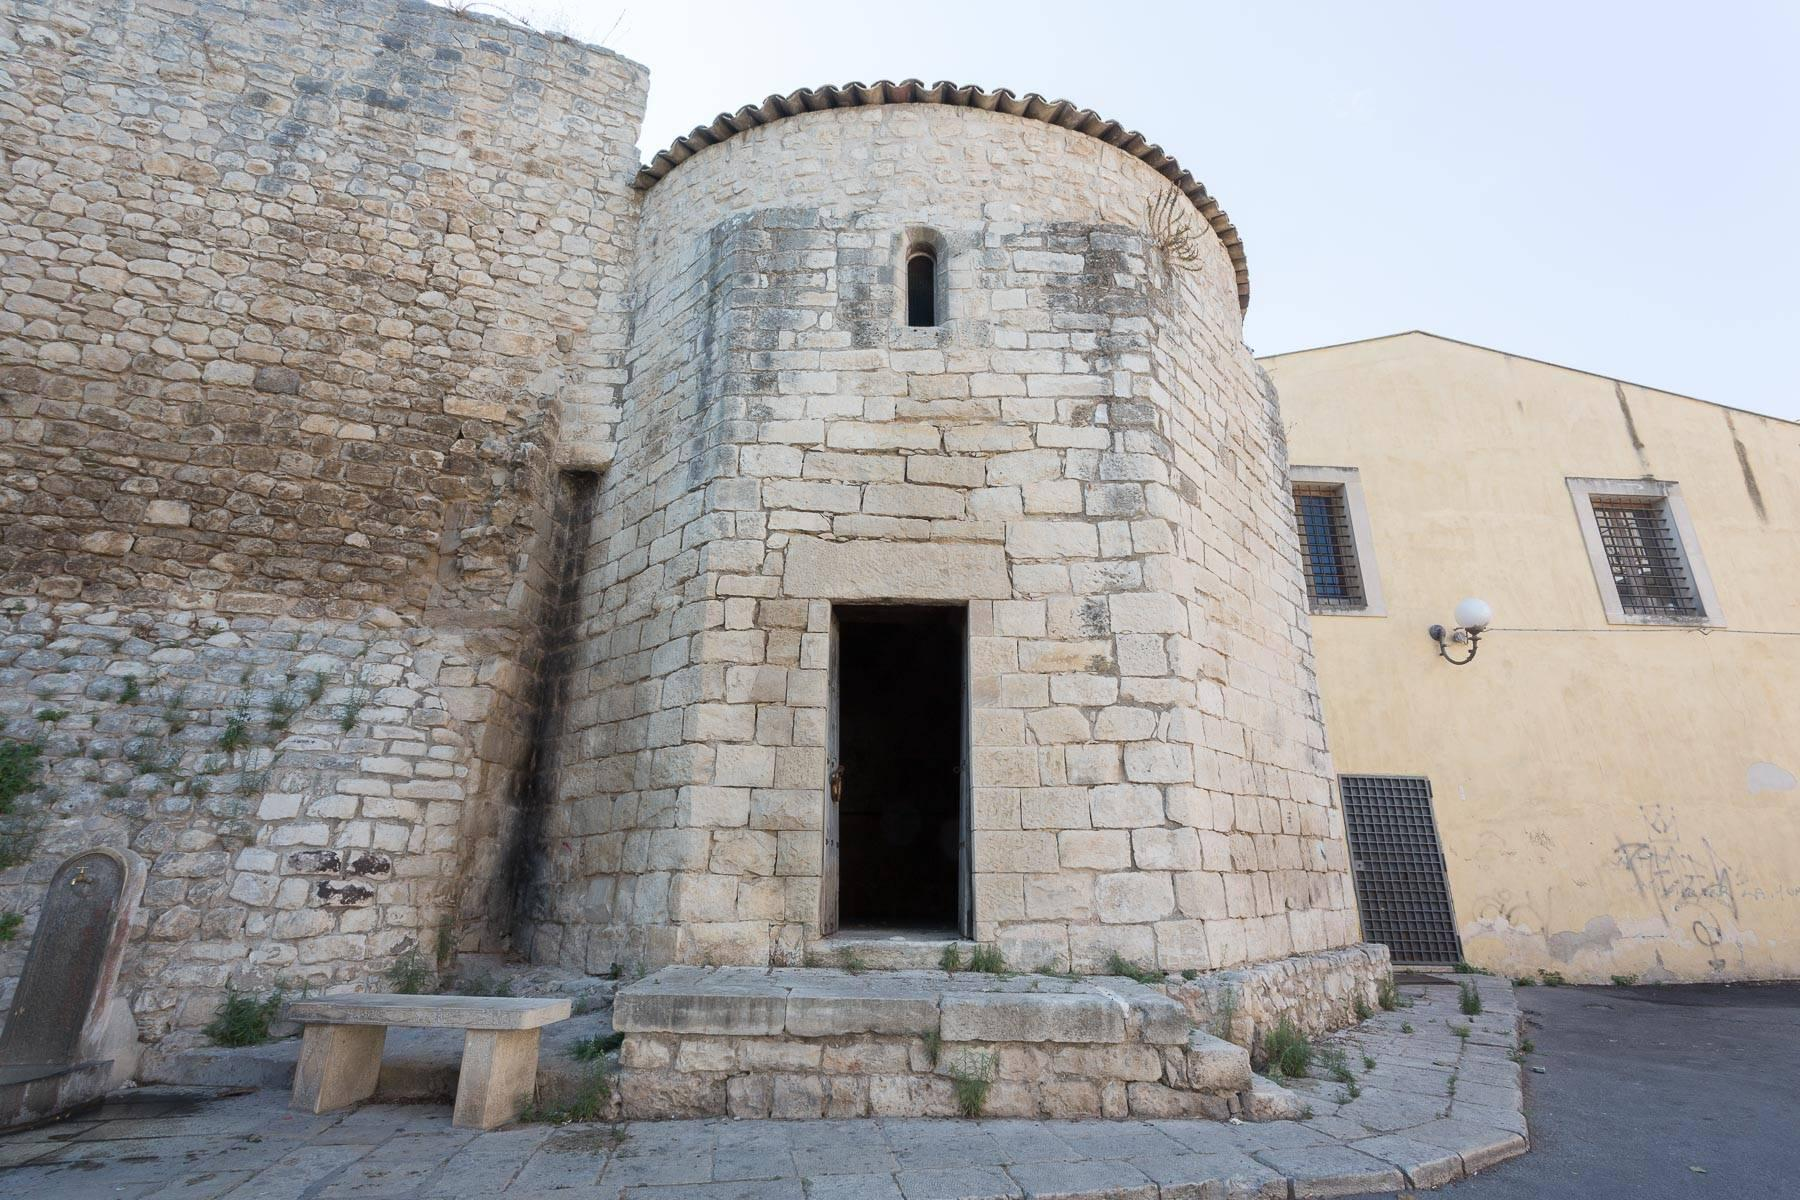 The Aragonese castle in Comiso - 13